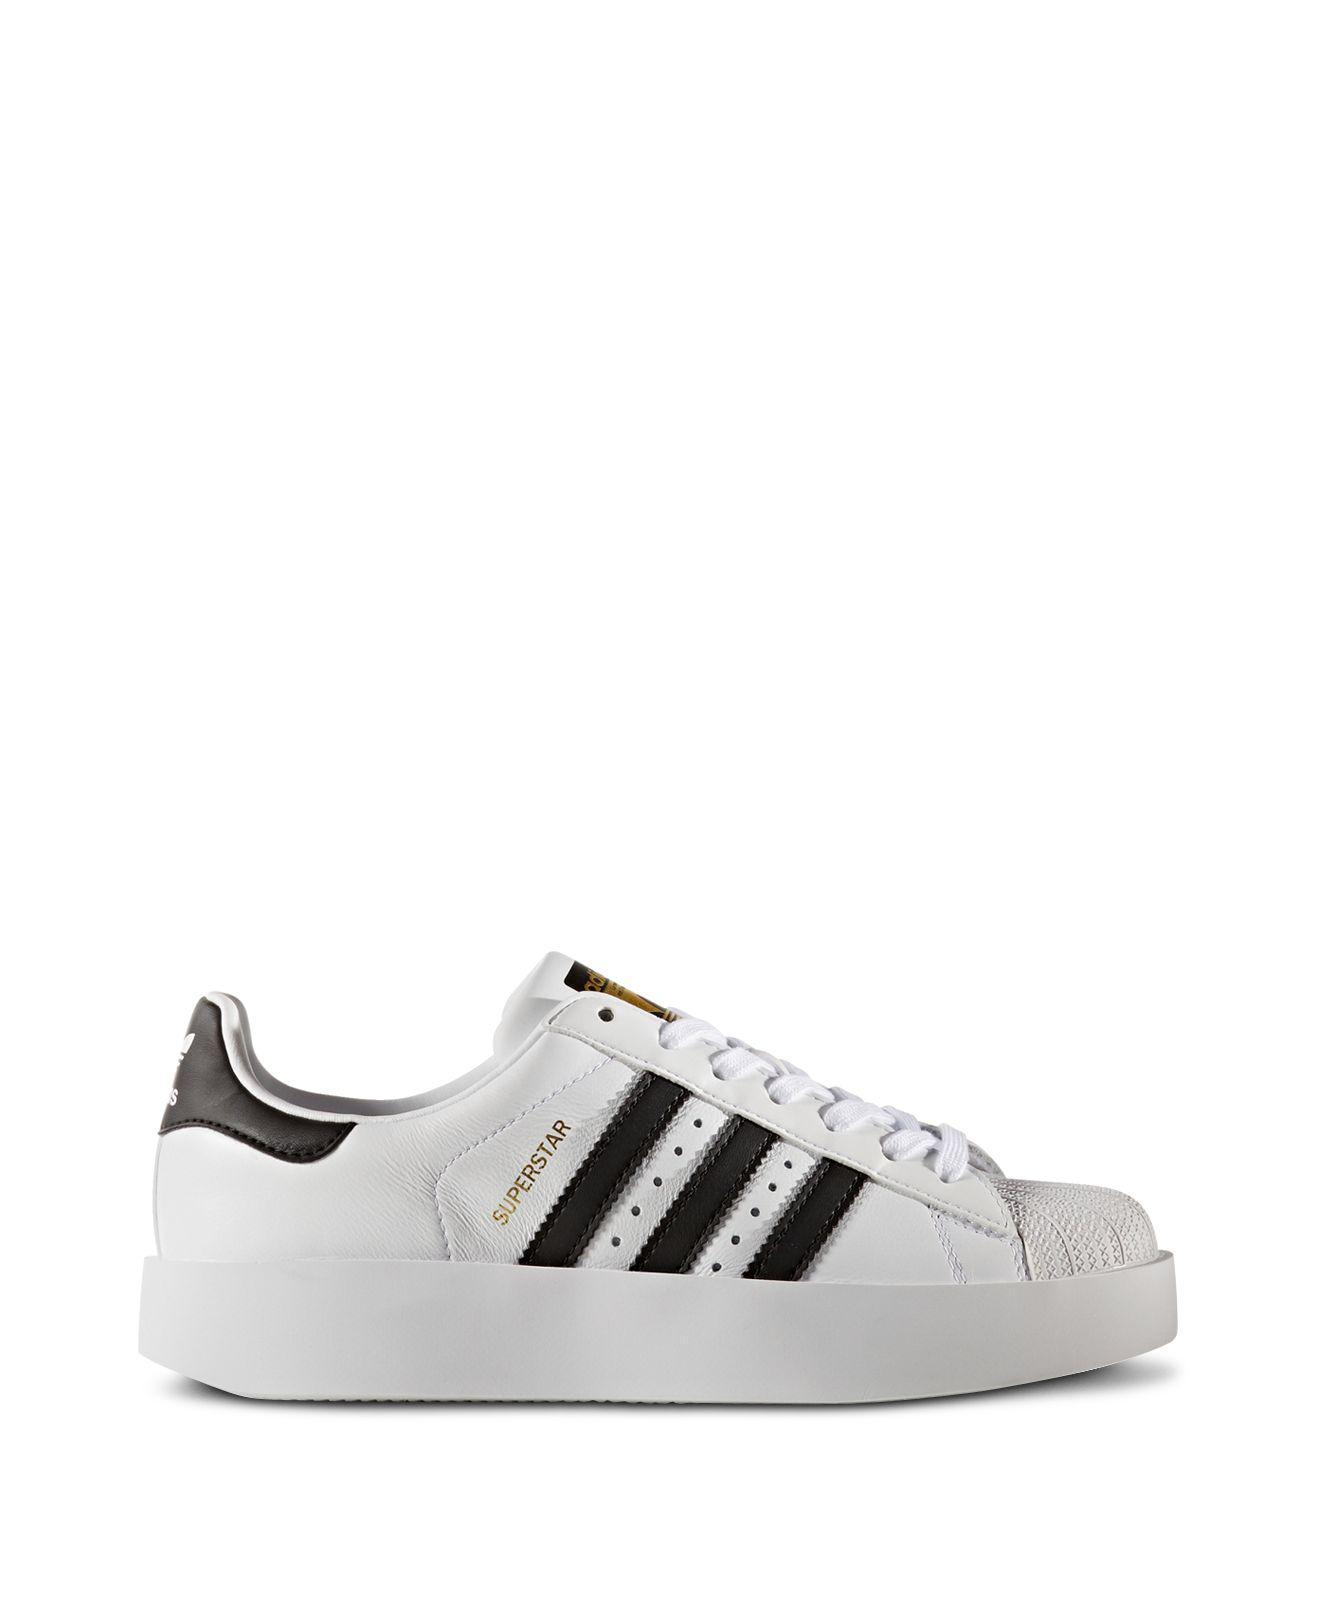 adidas Women's Superstar Bold Platform Lace Up Sneakers in White ...